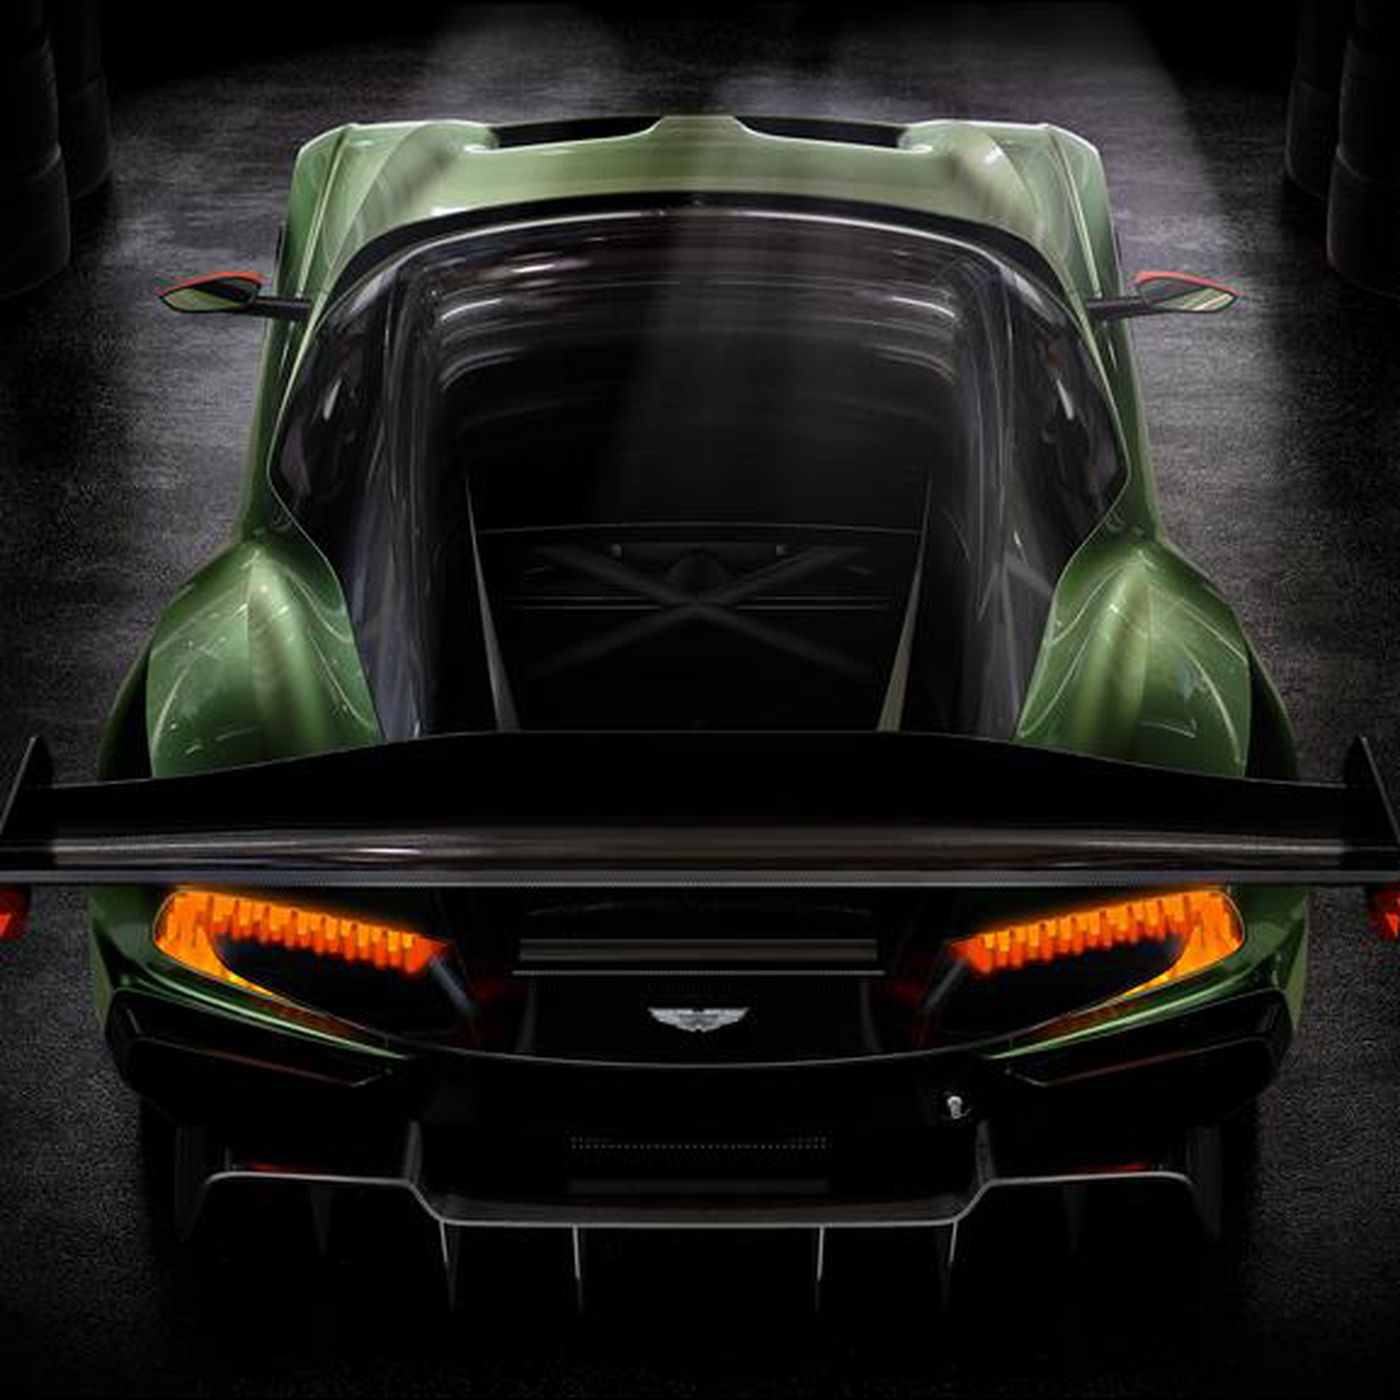 This Is The Vulcan Aston Martin S Craziest Car Ever The Verge